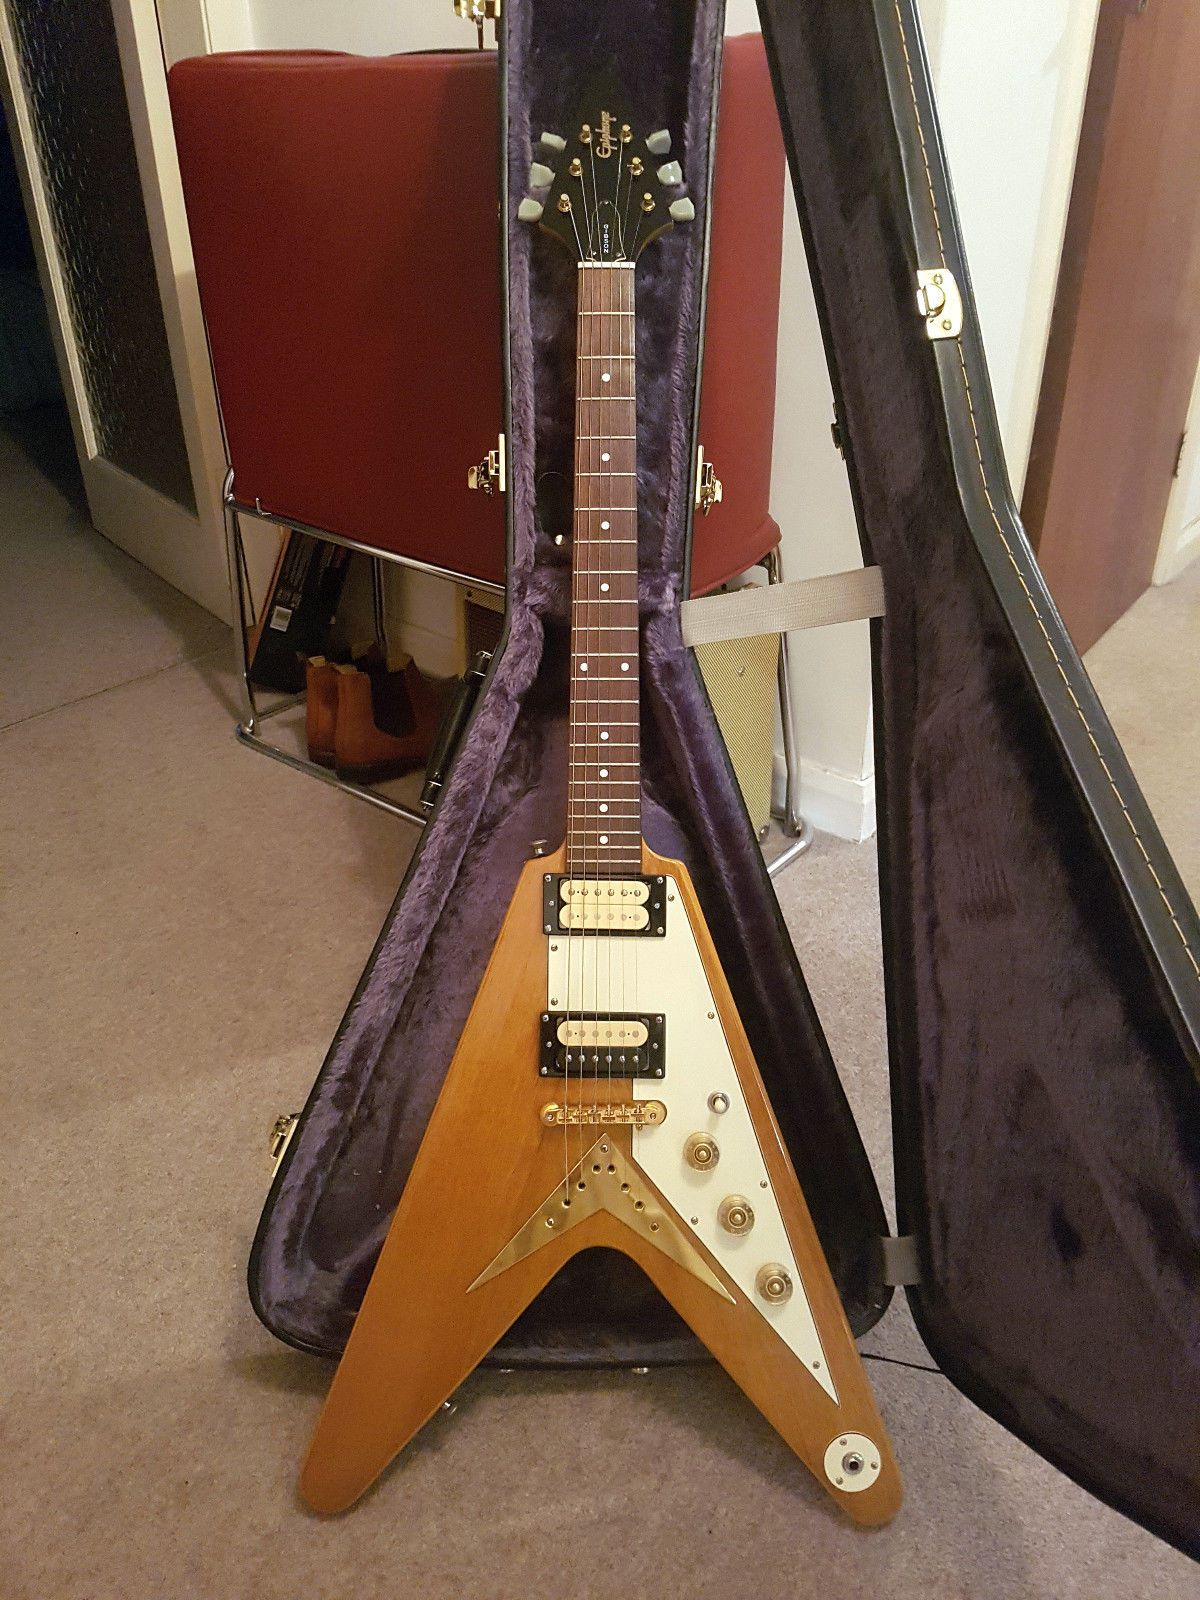 epiphone flying v limited edition korina 1999 dimarzio s abr 1 50 s wiring rare [ 1200 x 1600 Pixel ]